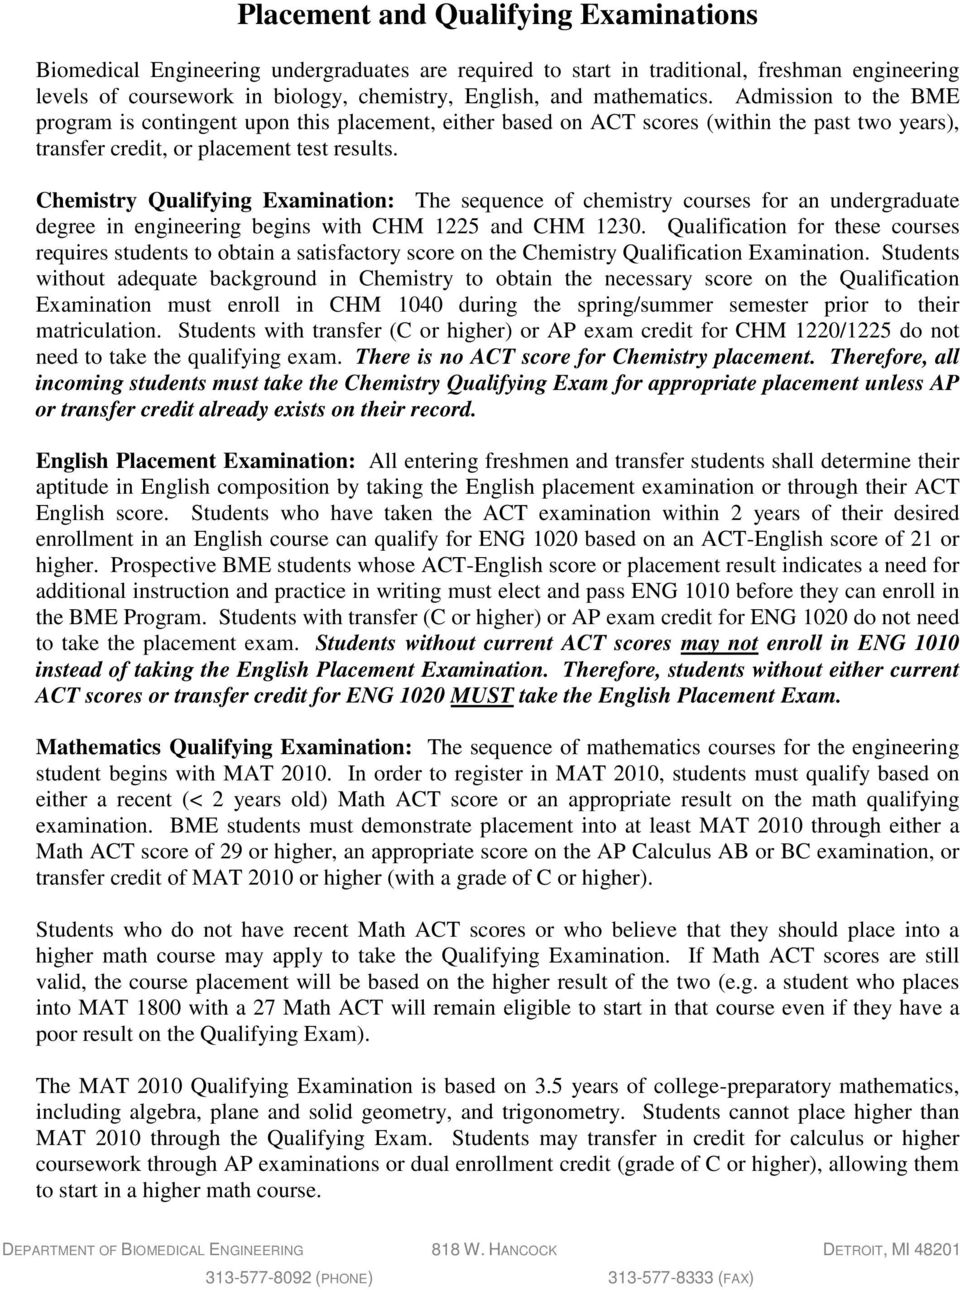 Chemistry Qualifying Examination: The sequence of chemistry courses for an undergraduate degree in engineering begins with CHM 1225 and CHM 1230.